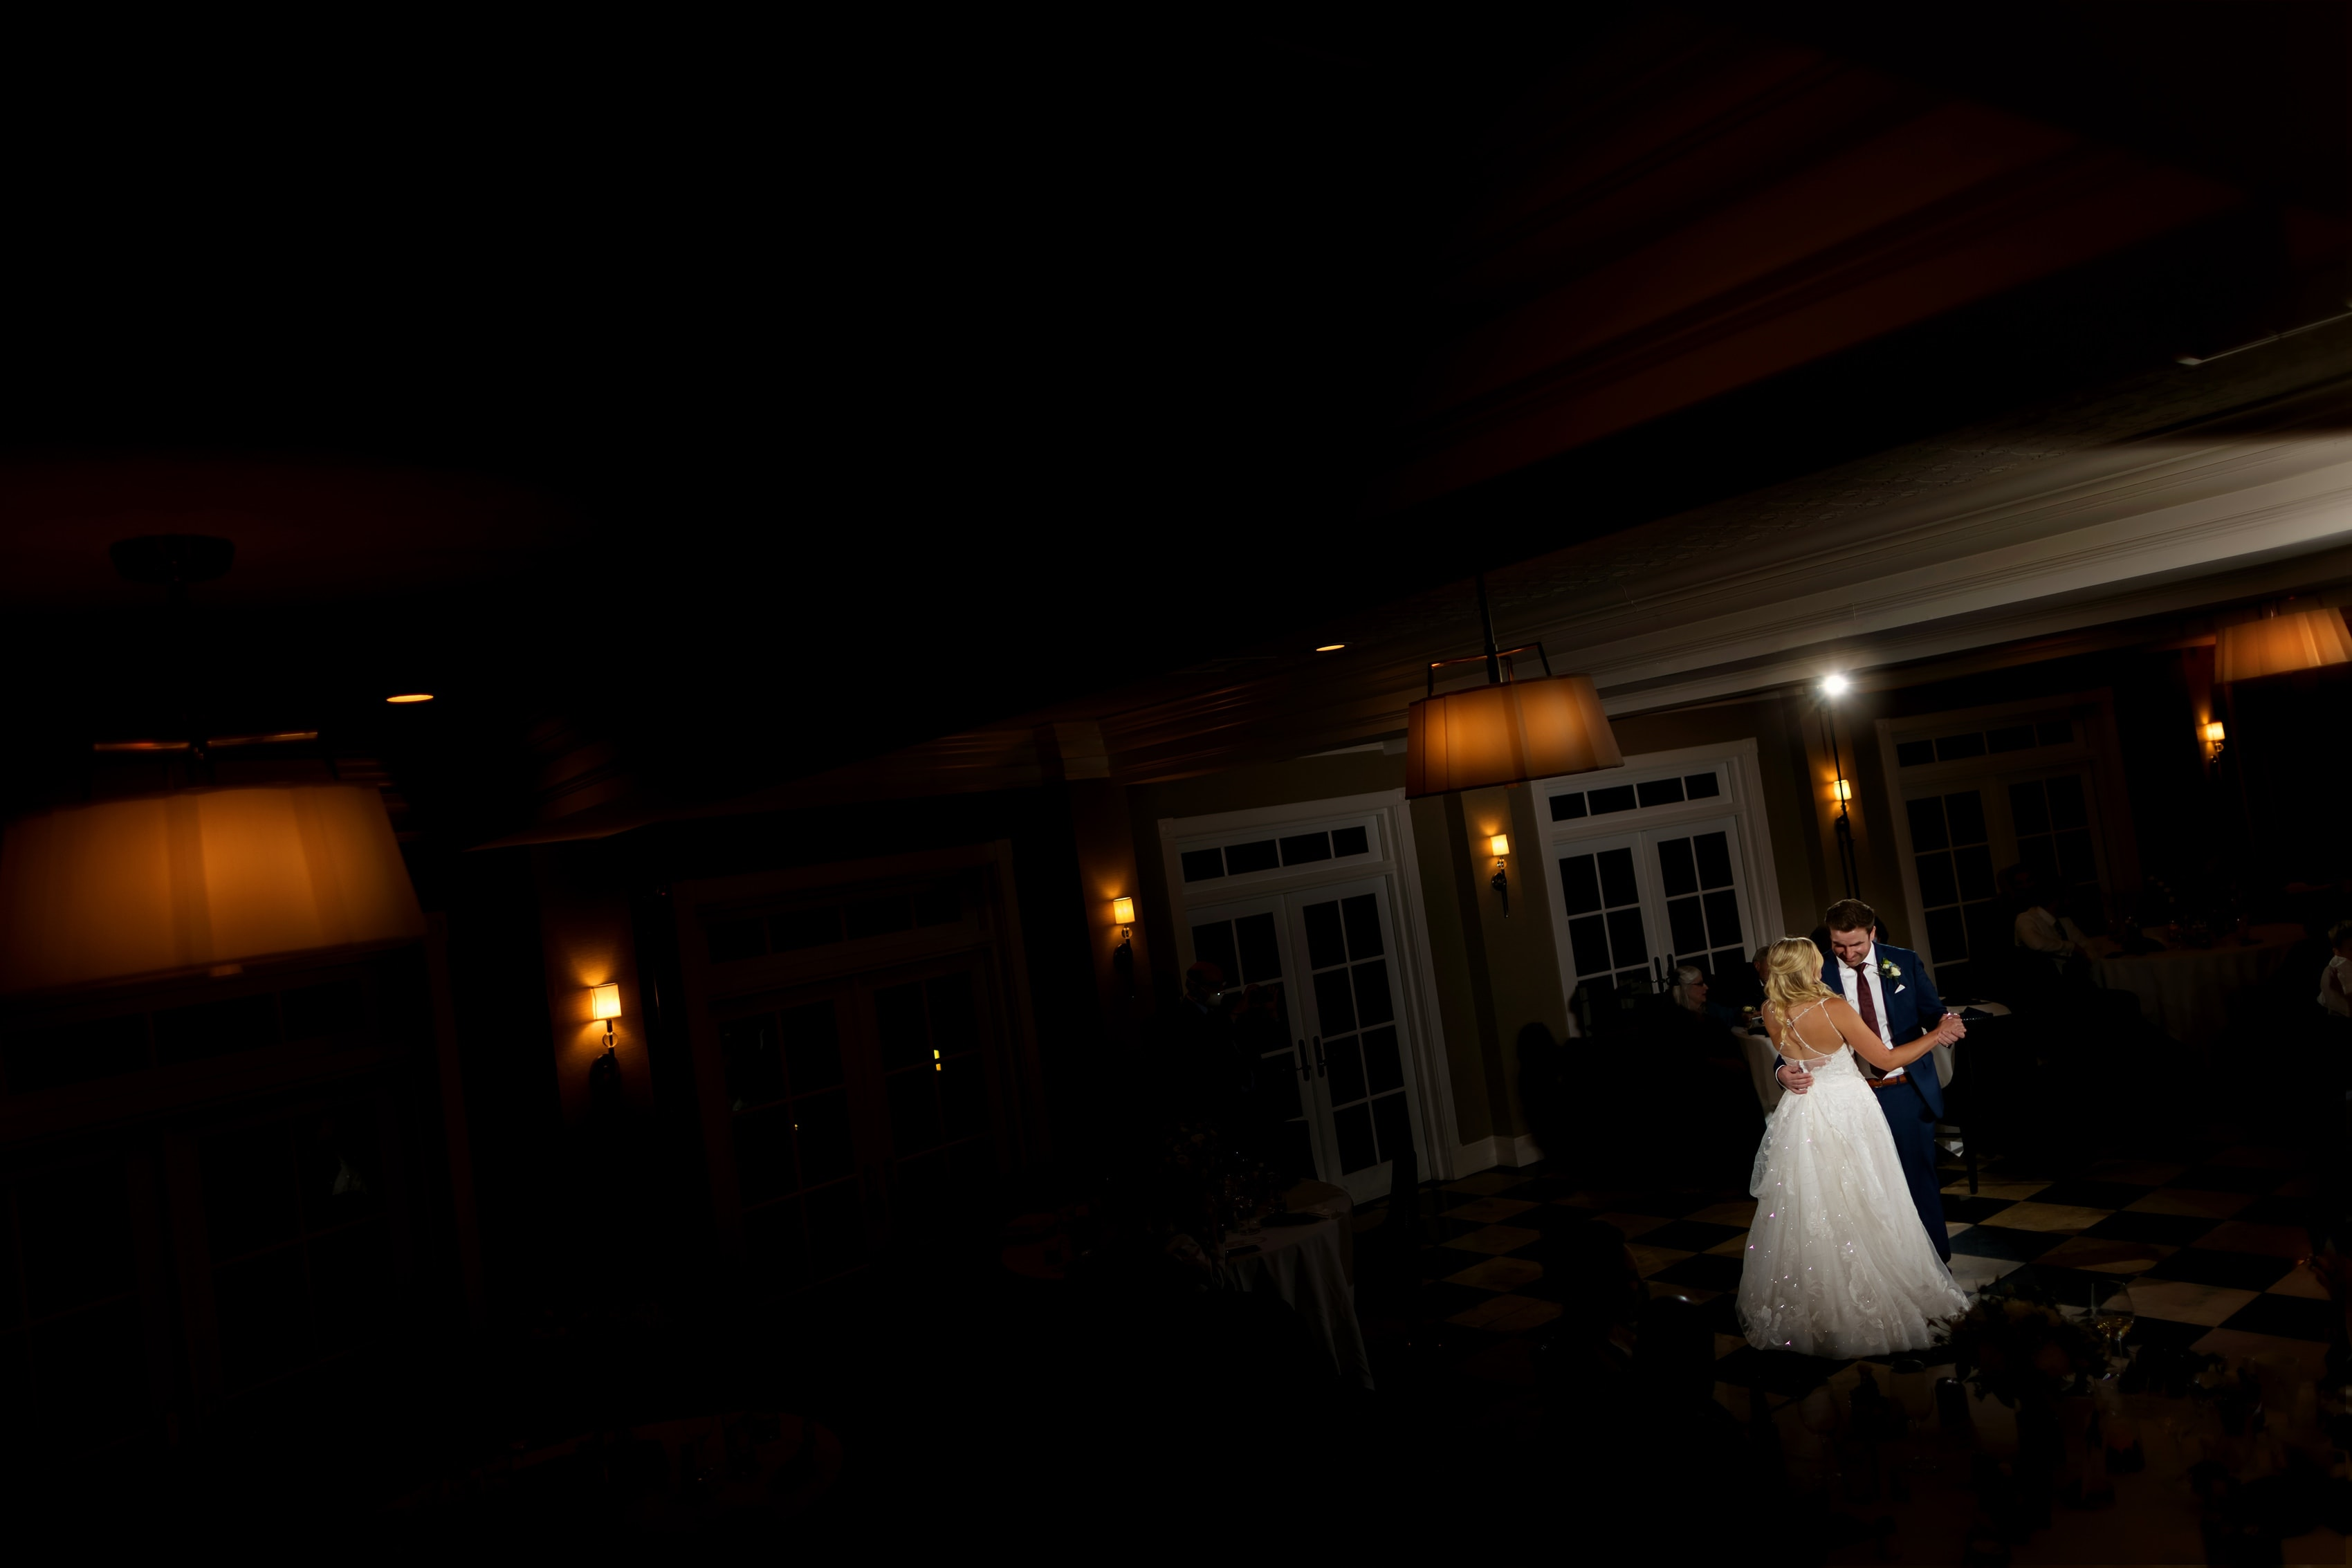 bride and groom share first dance during wedding at Bay Harbor Inn in Petoskey, Michigan